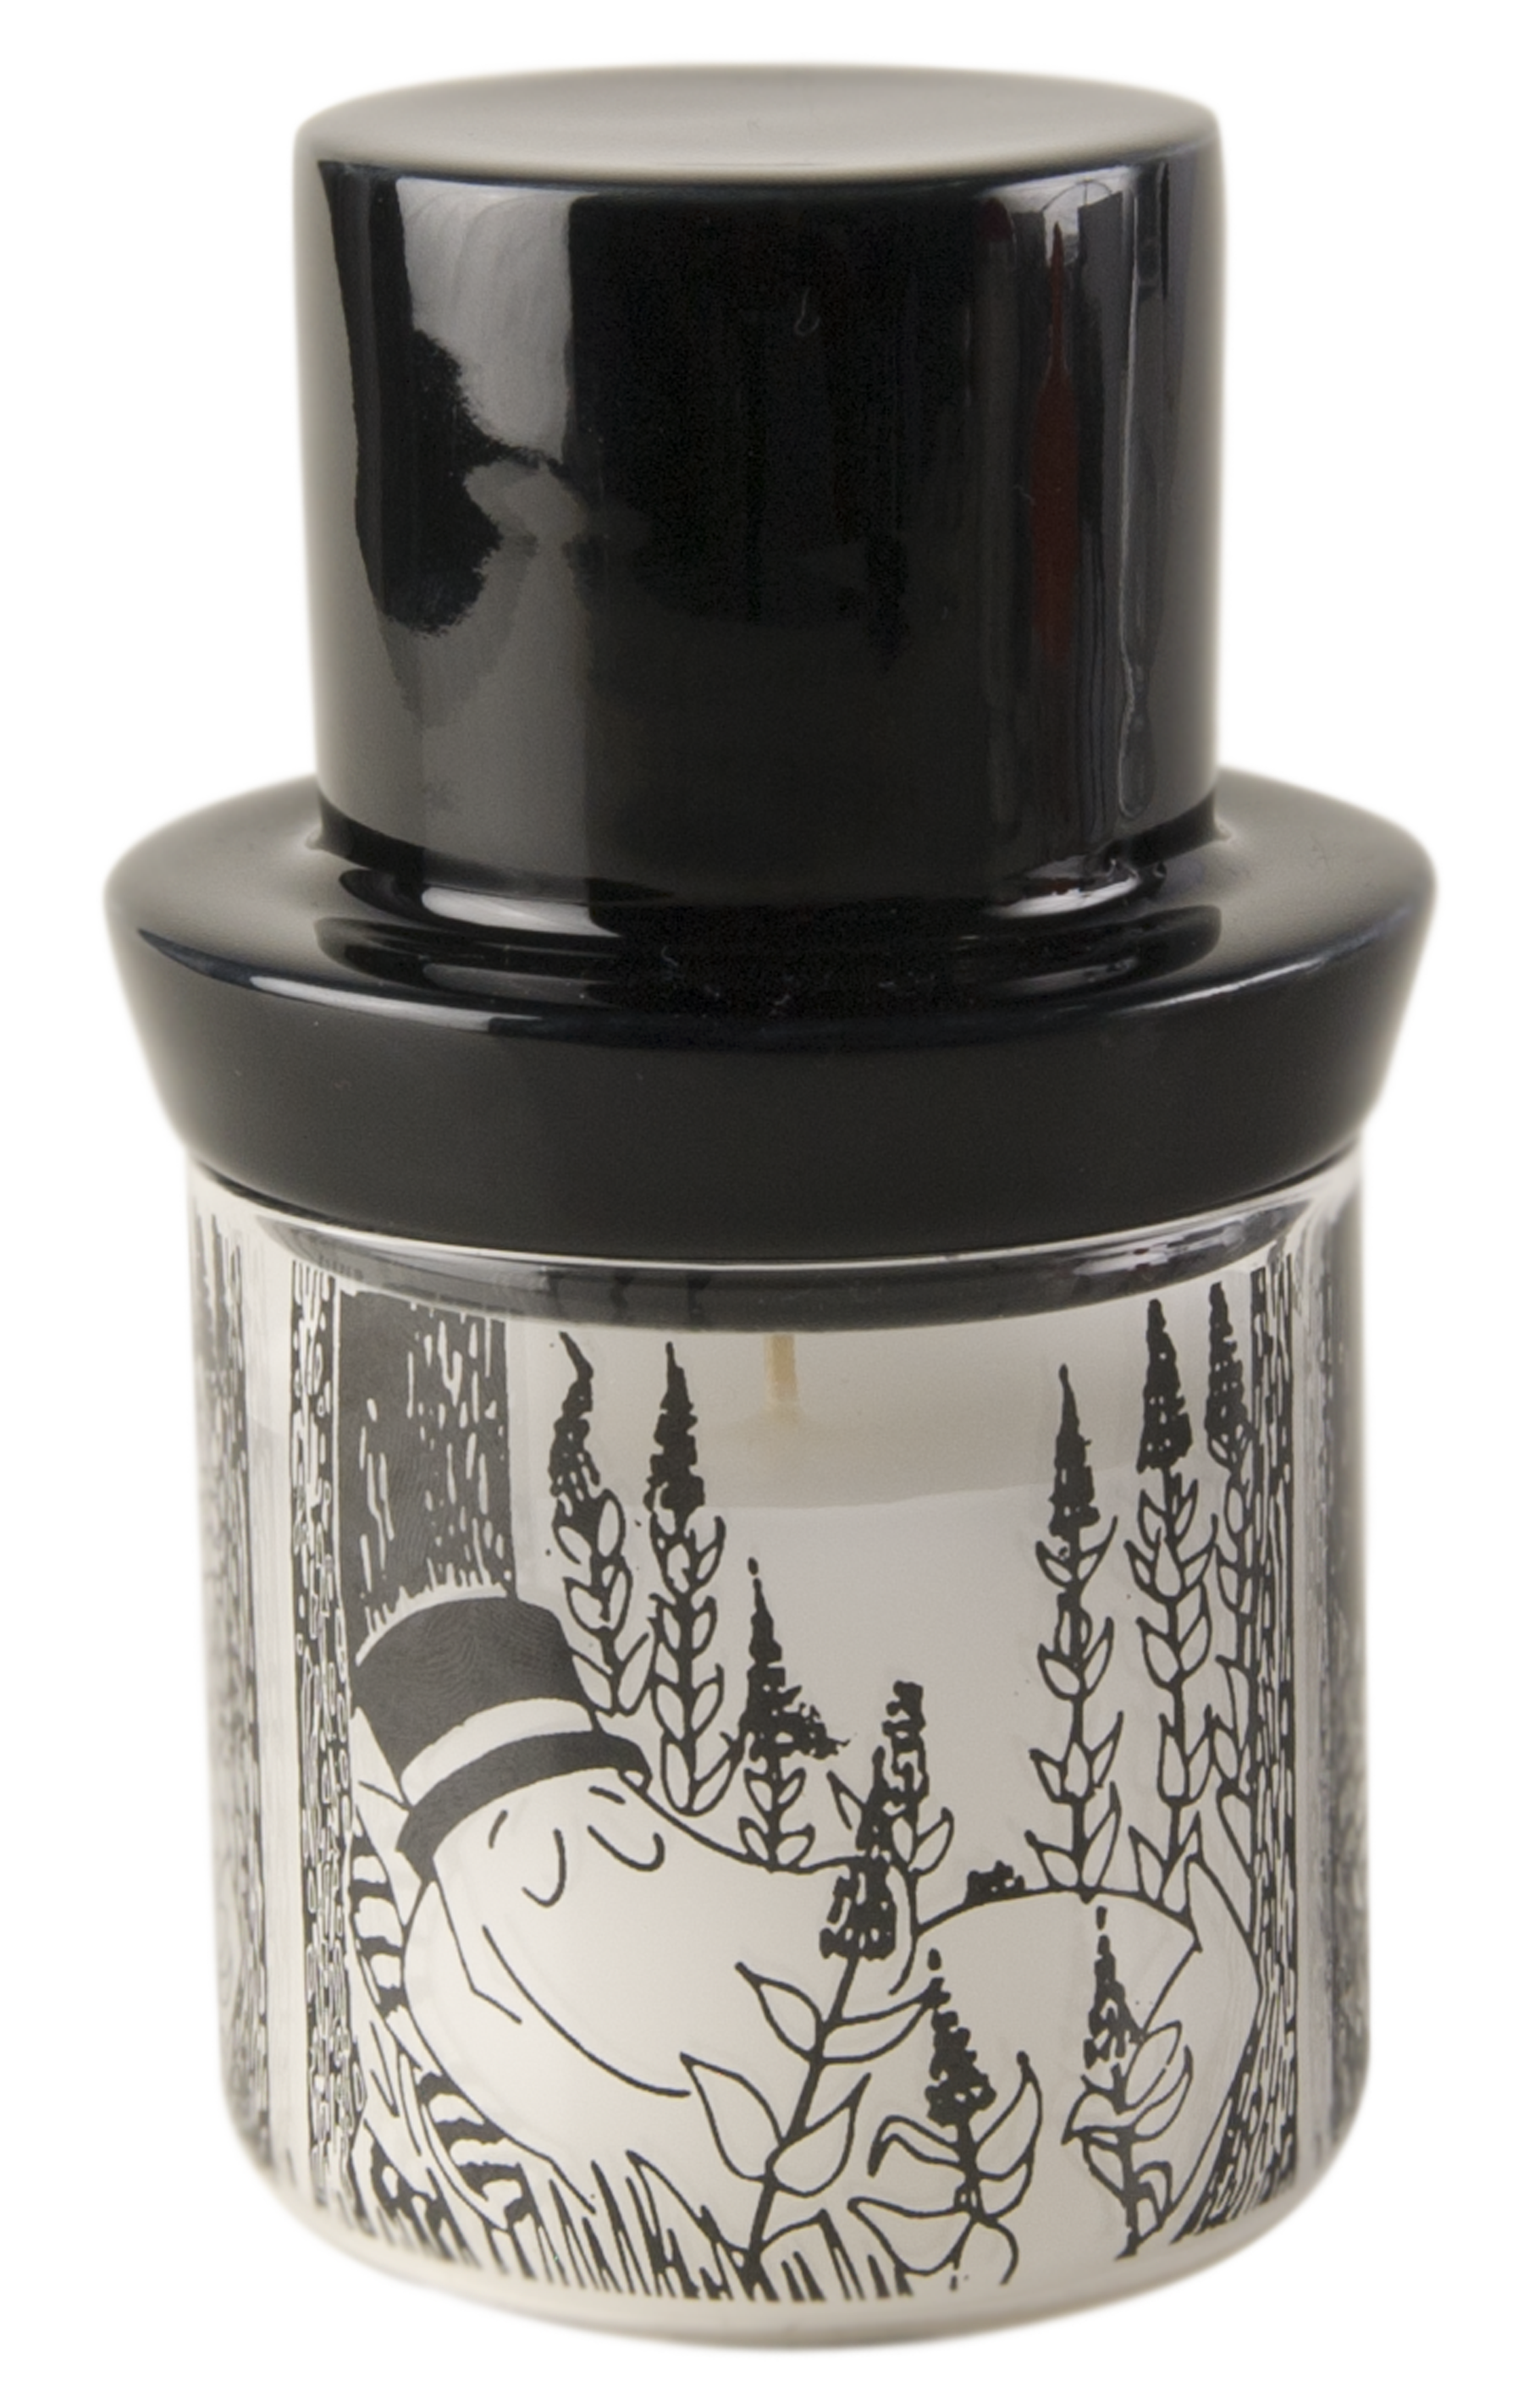 Muurla Moominpappa candle with extinguisher